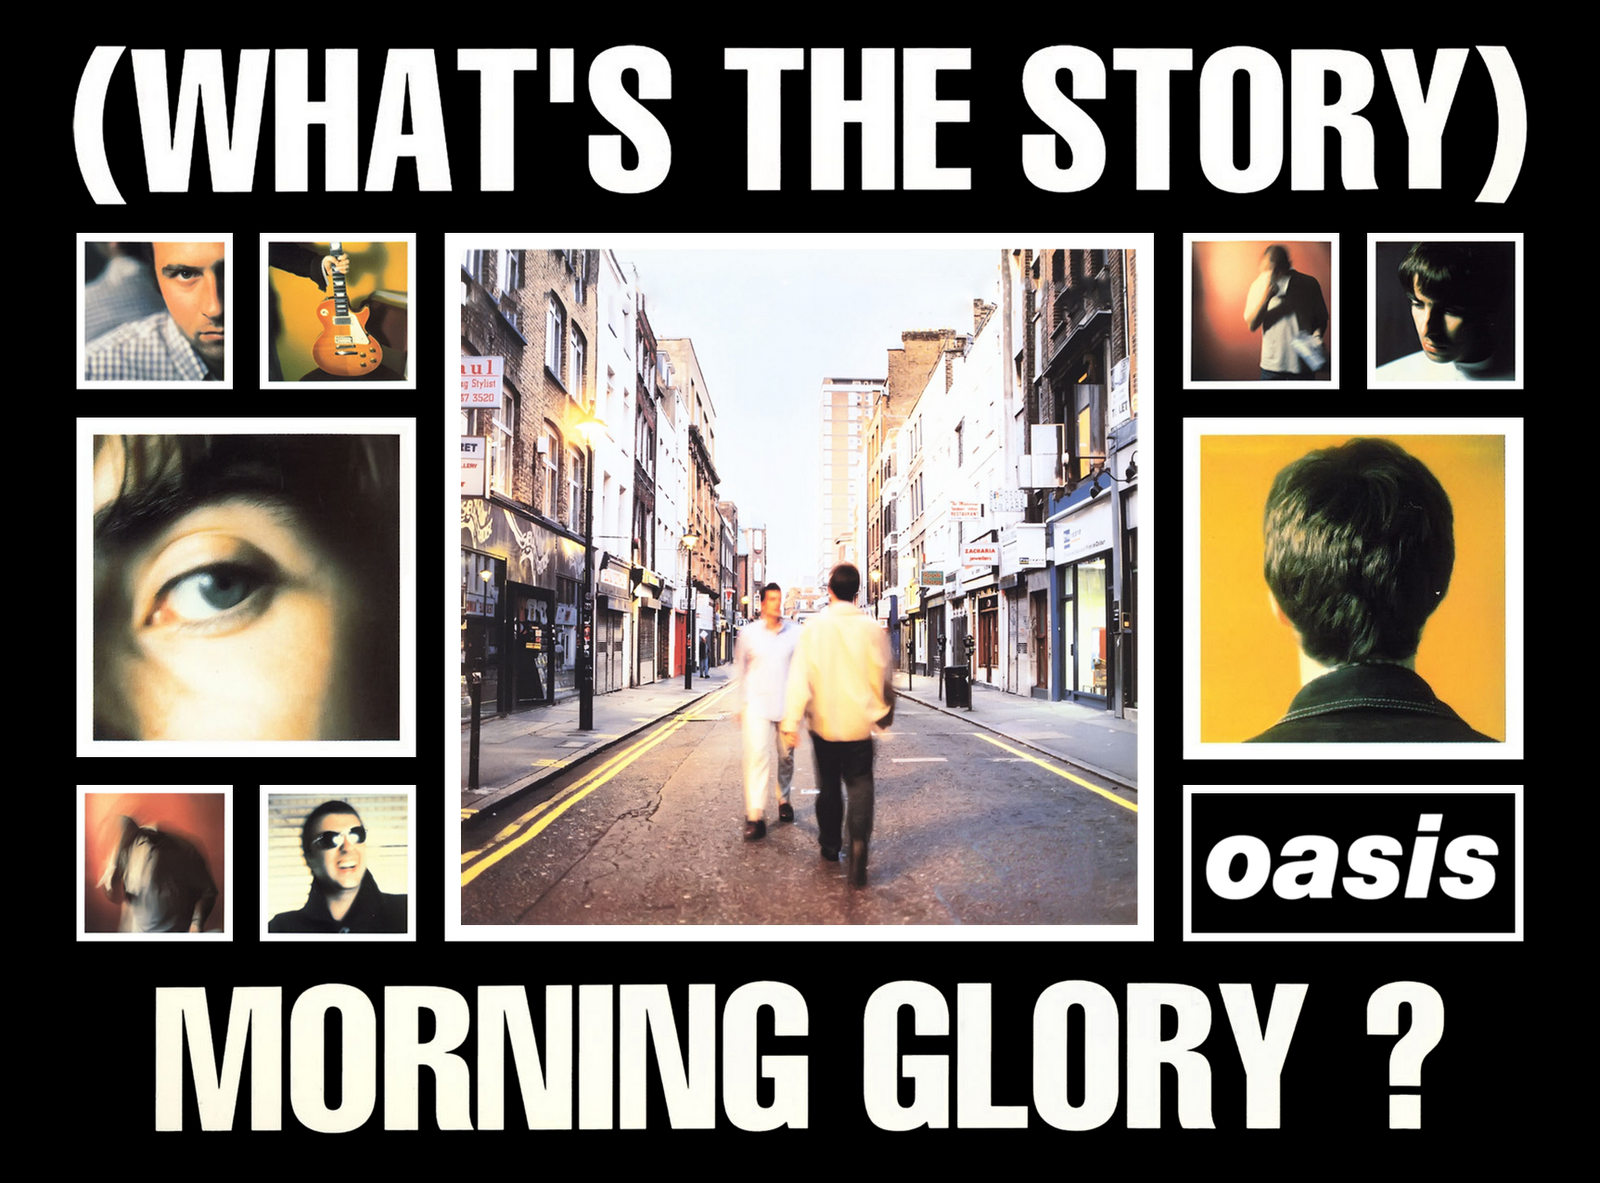 Oasis Notizie - Il blog in italiano sugli Oasis e sui ... Oasis Whats The Story Morning Glory